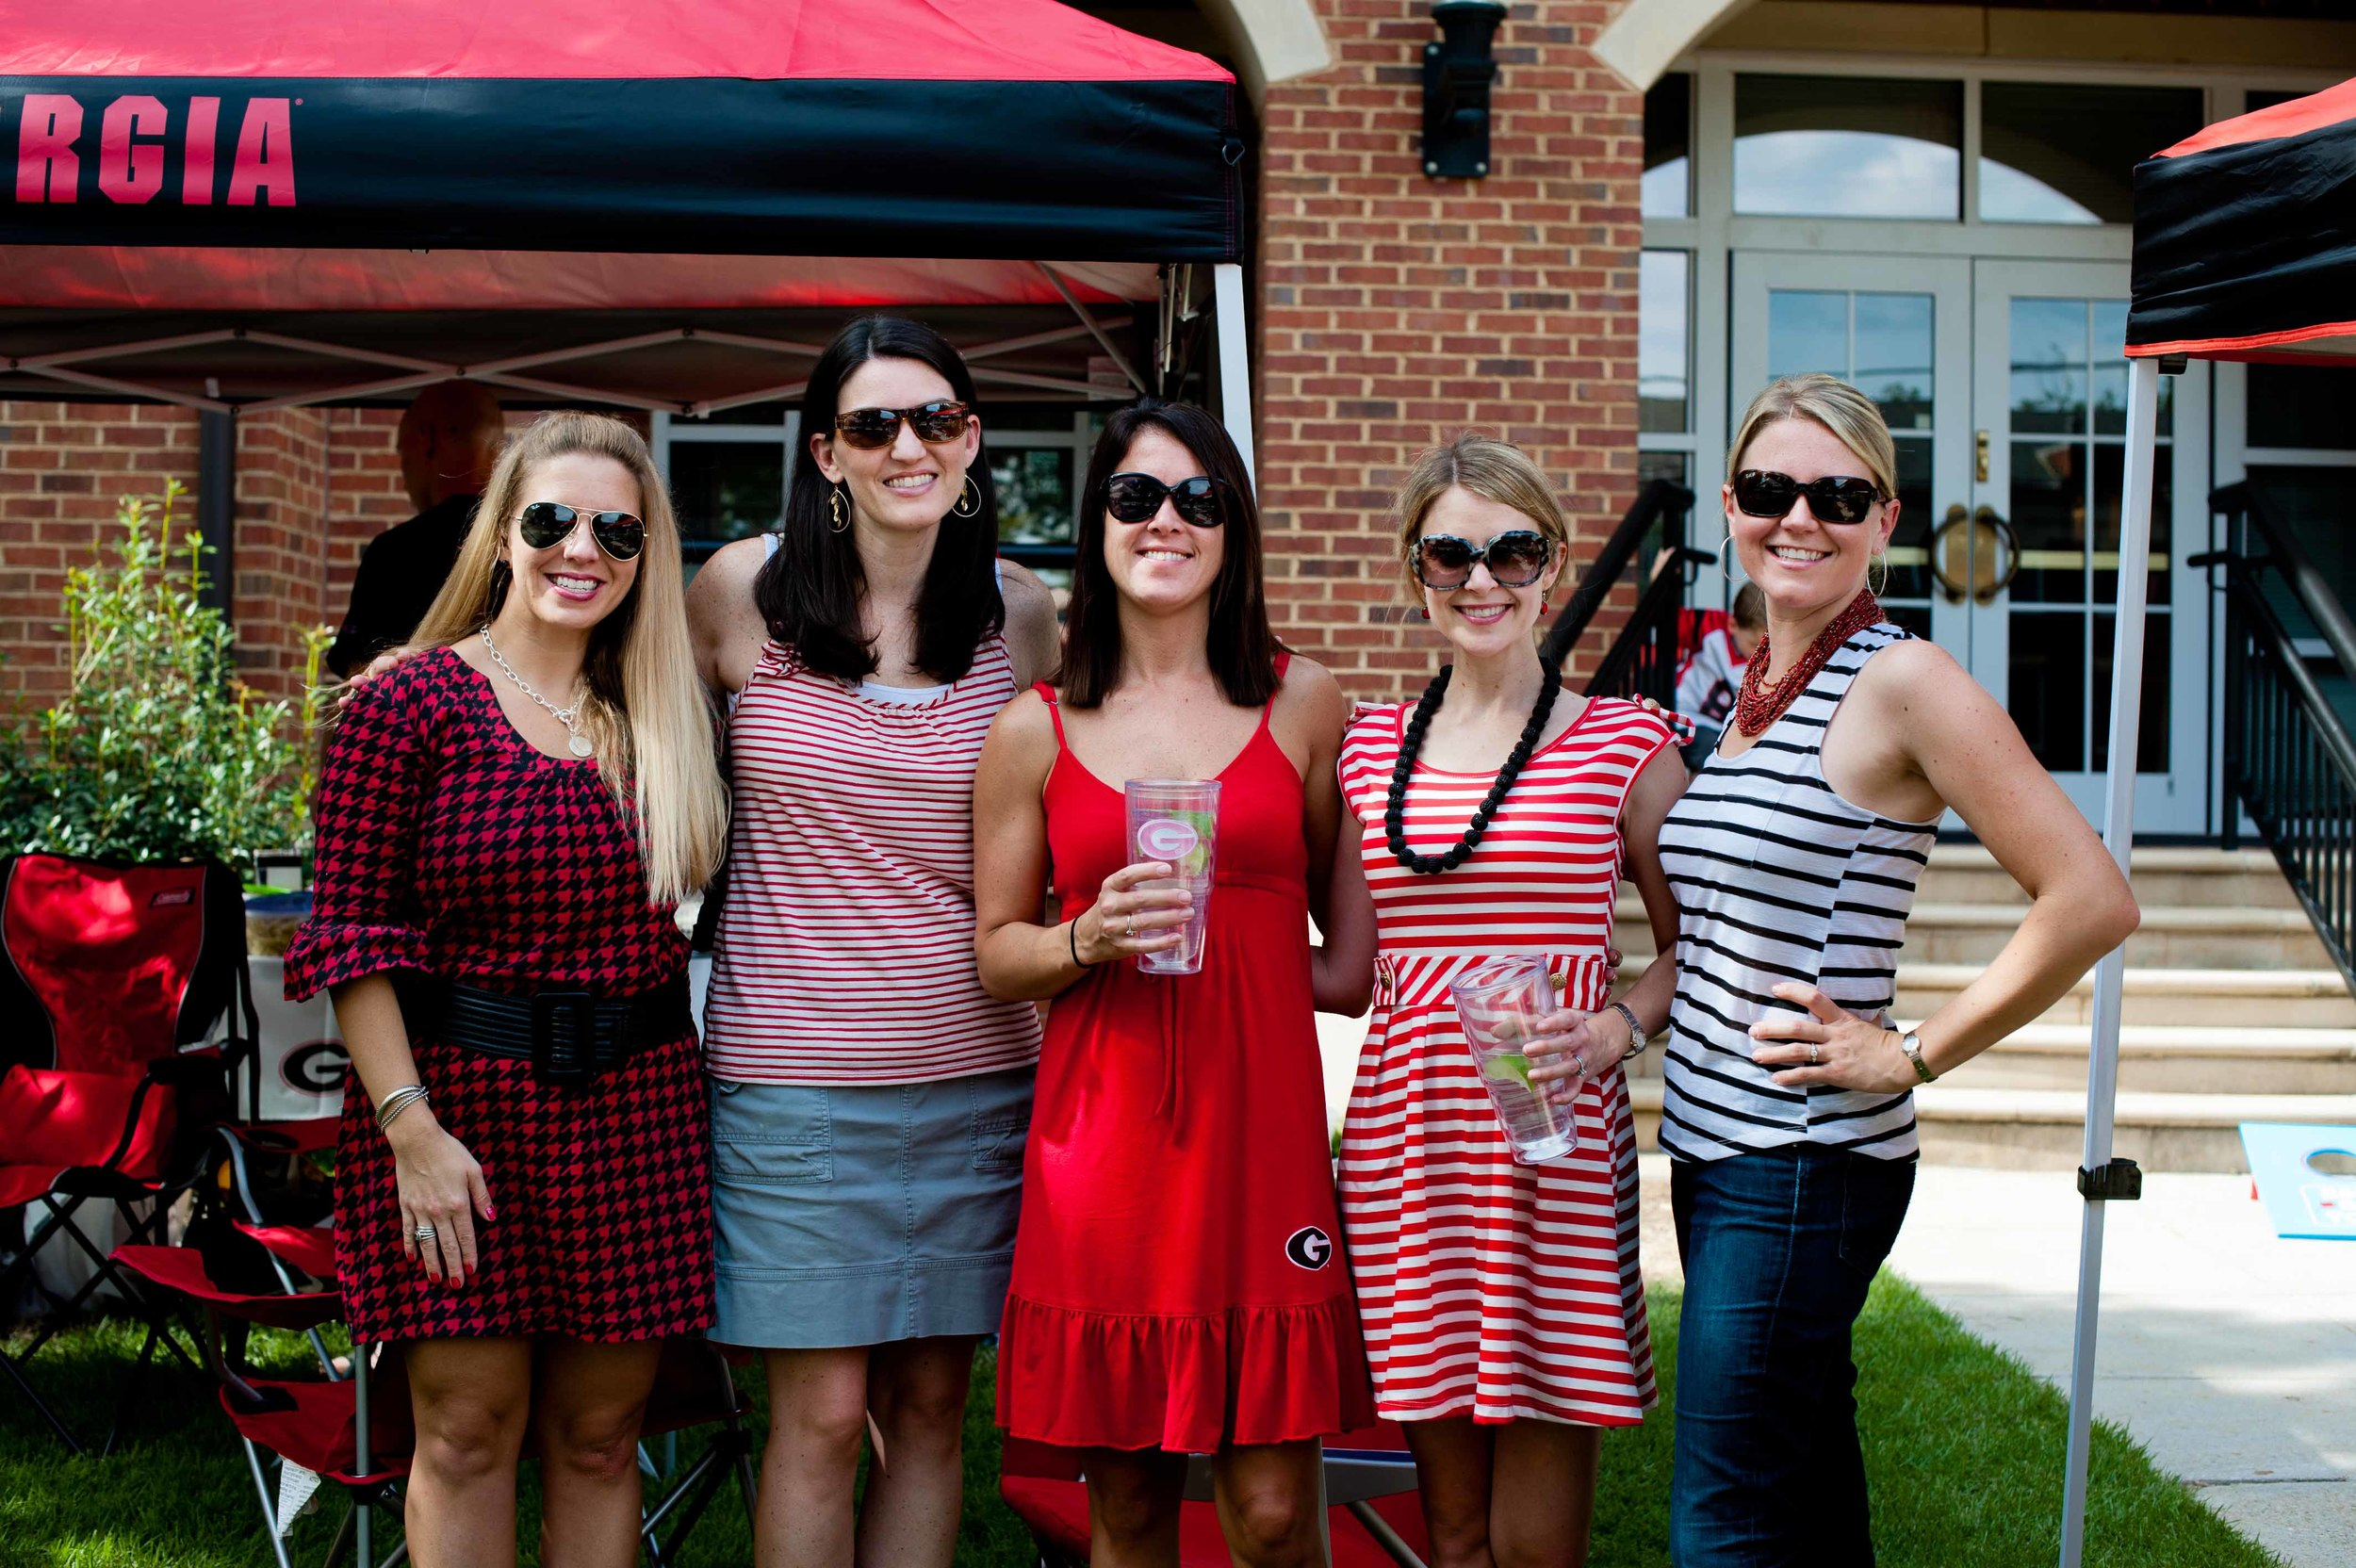 We blend right in with the grad students, right? This photo was missing one very important lady: Meggles herself. <3